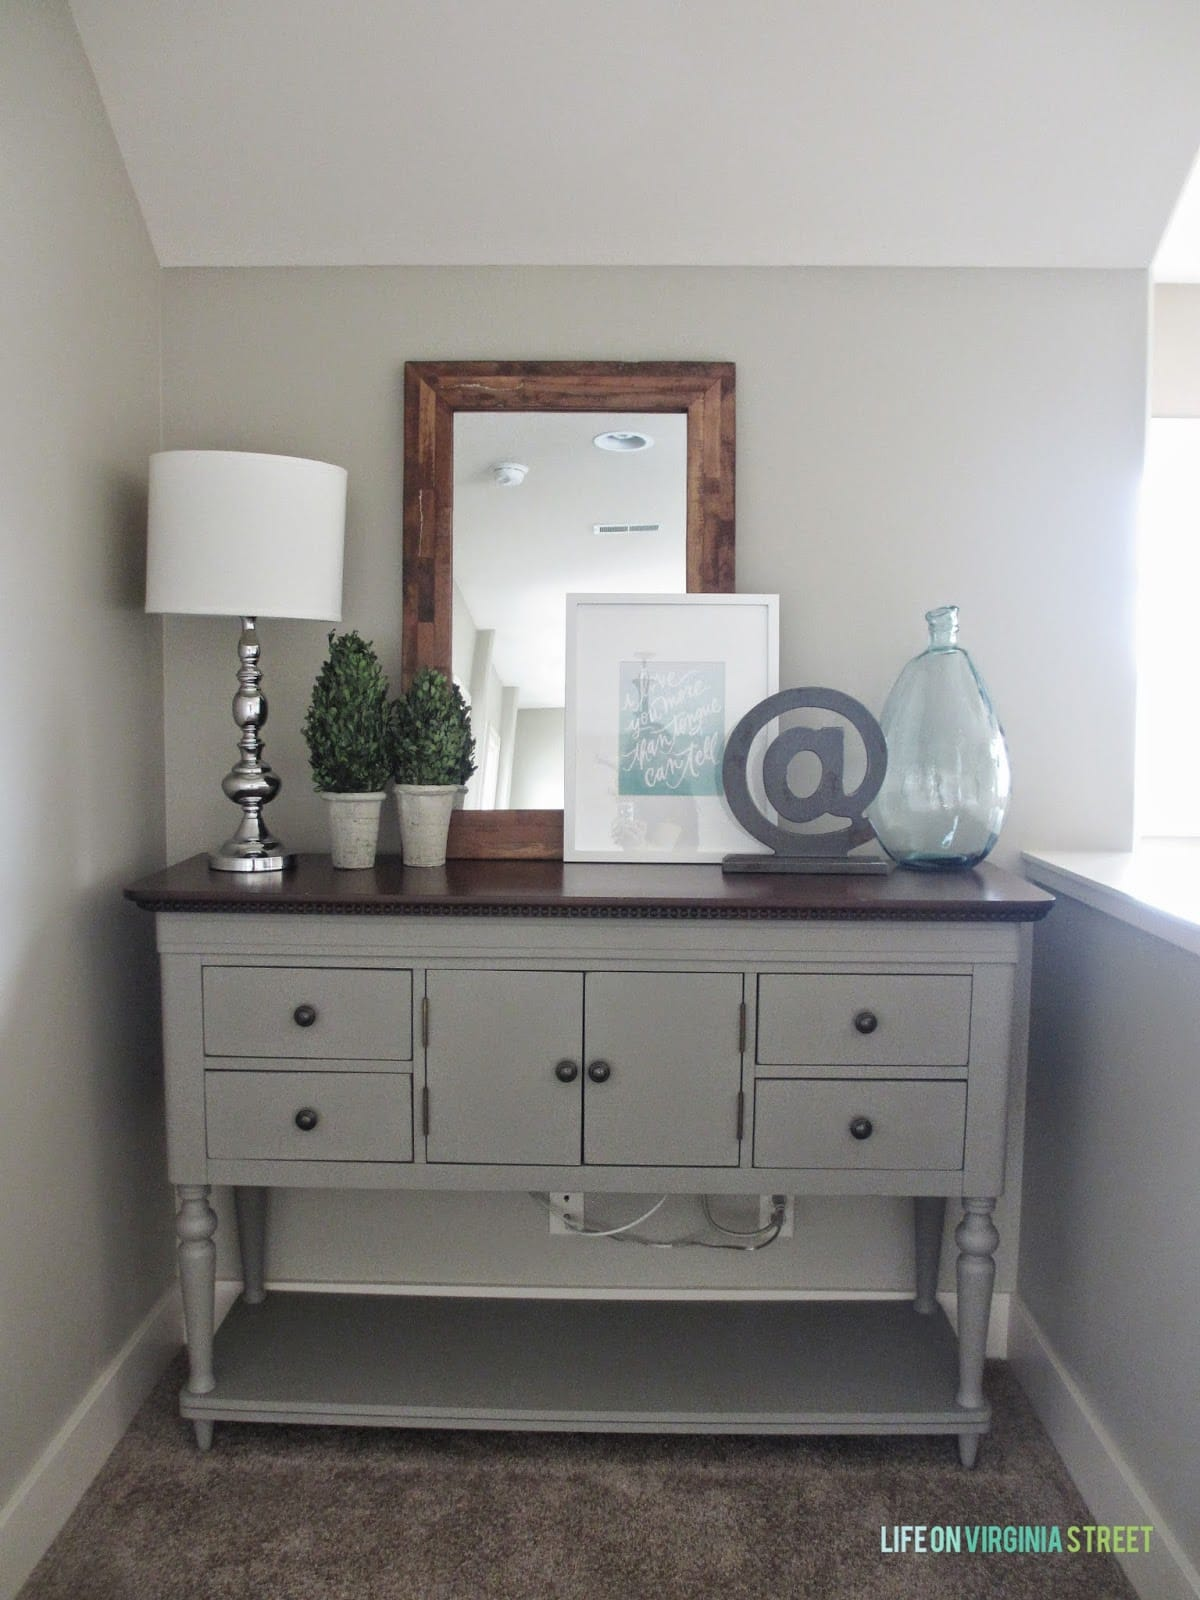 We used this painted buffet table to hide our wi-fi setup and add a little something extra to the upstairs hallway makeover.